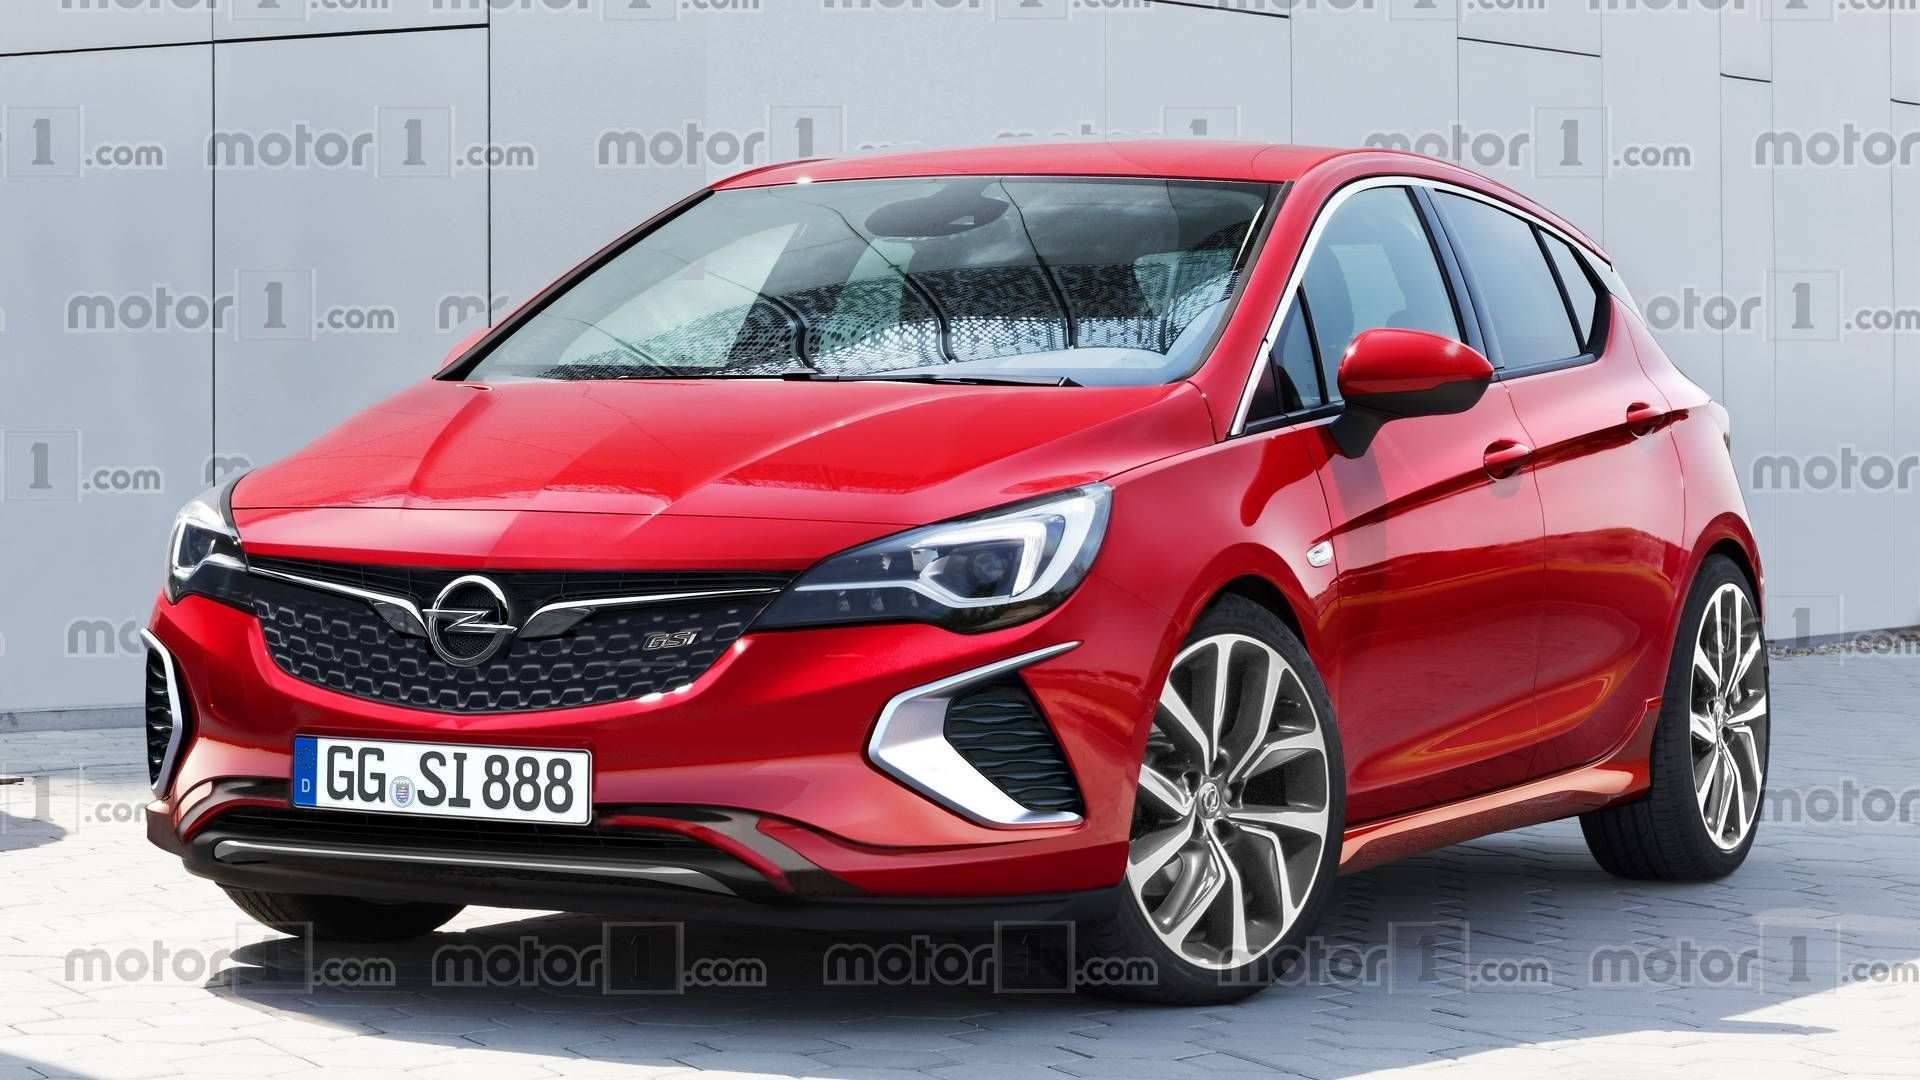 63 Best Review 2020 Opel Astra 2018 Spesification for 2020 Opel Astra 2018